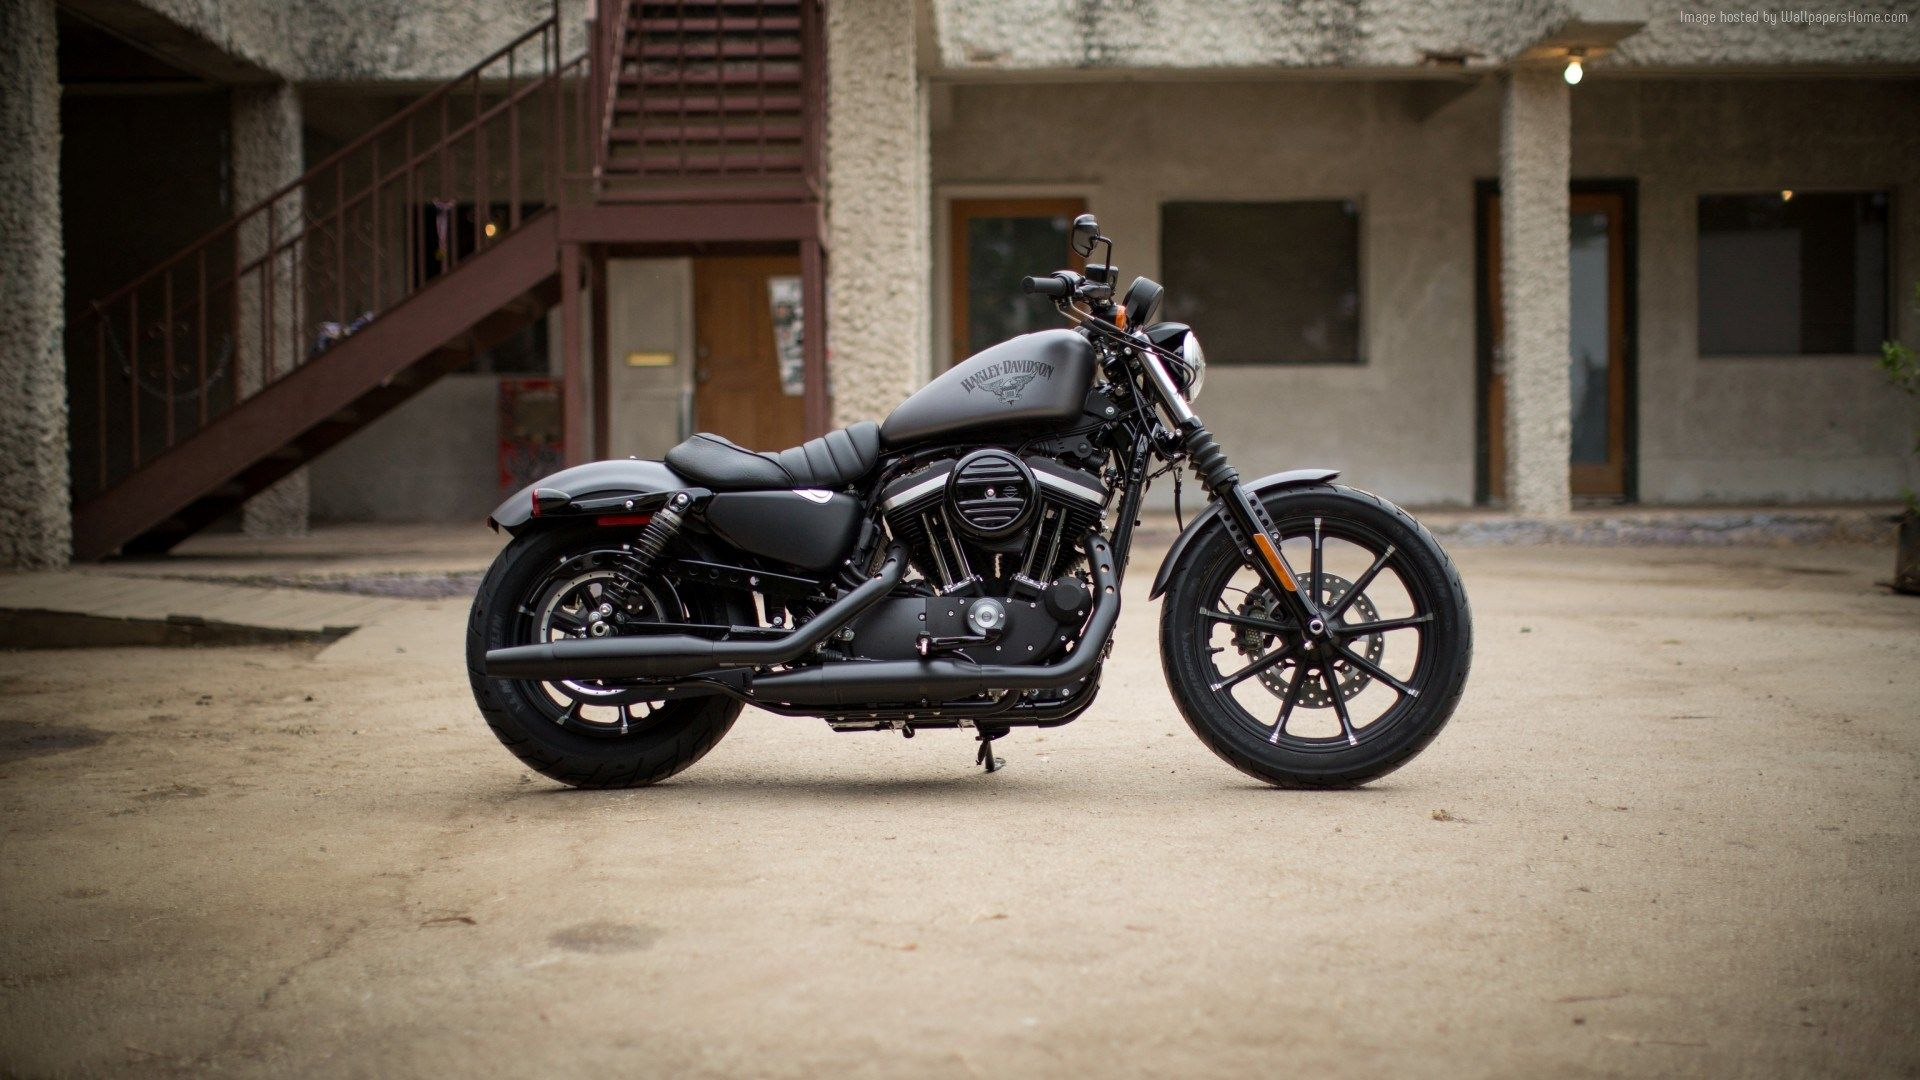 Harley Davidson Iron 883 Wallpaper